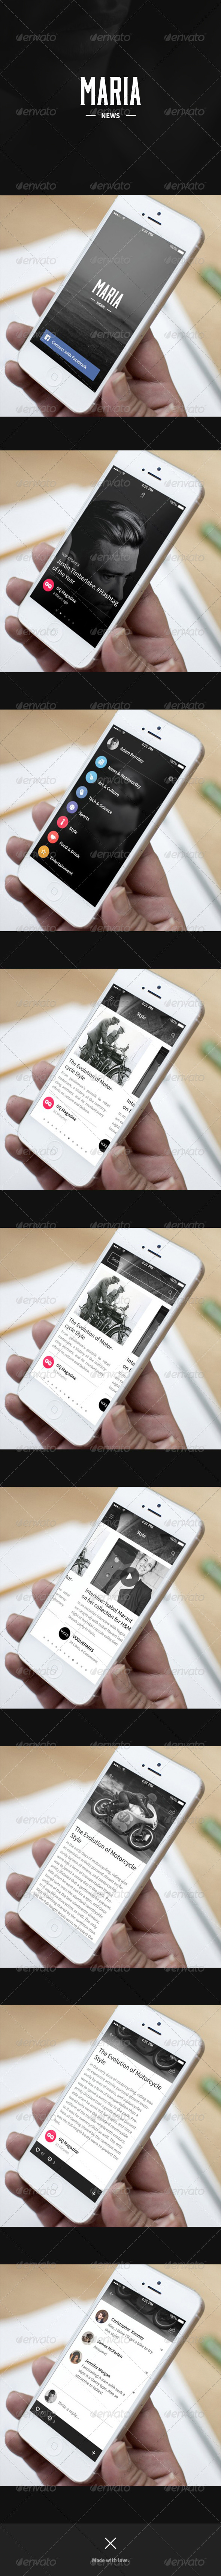 News App - Maria - User Interfaces Web Elements